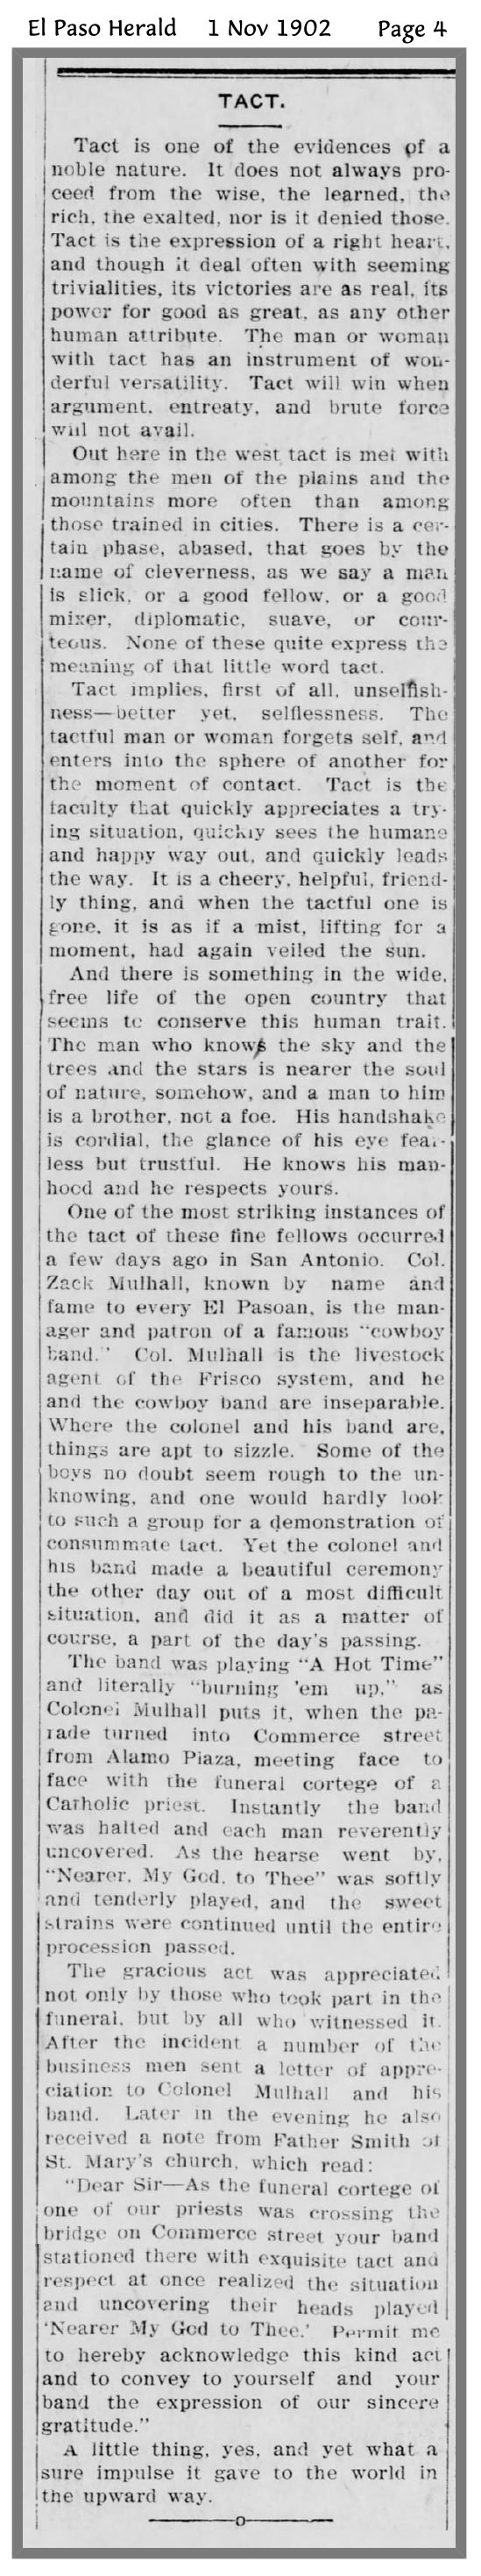 A kindness of Zack Mulhall's - El Paso Herald, 1 Nov 1902